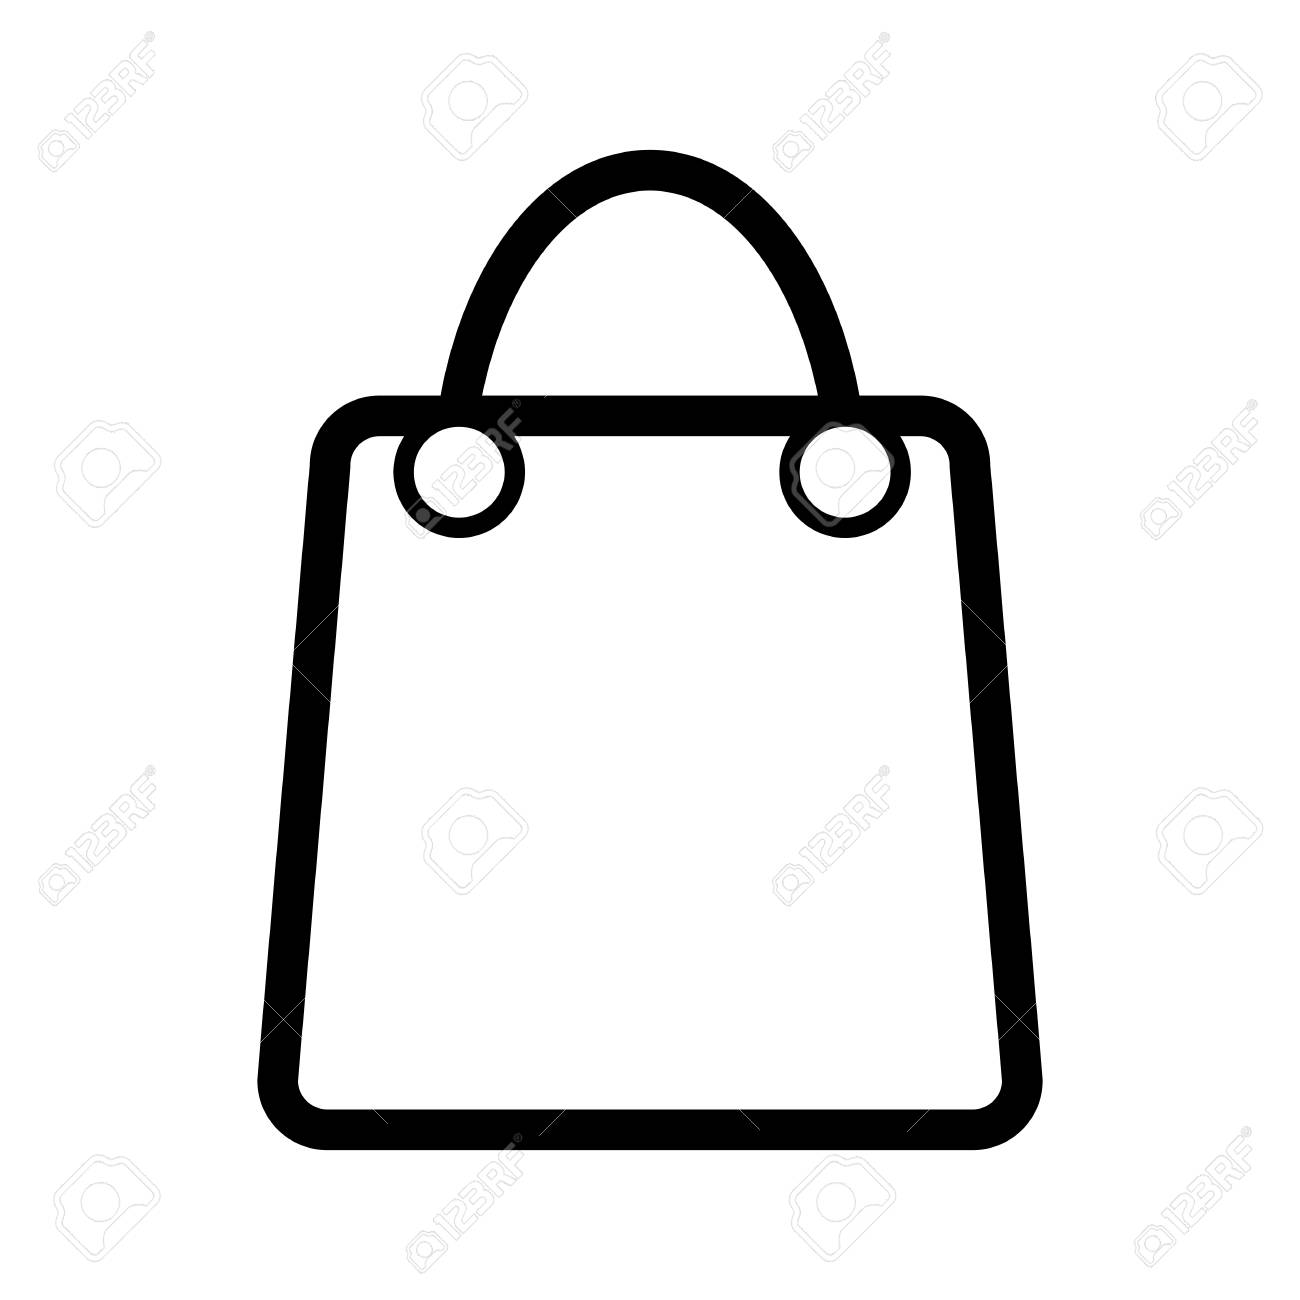 shopping bag vector icon black and white bag illustration with rh 123rf com bag victorinox bag victoria's secret